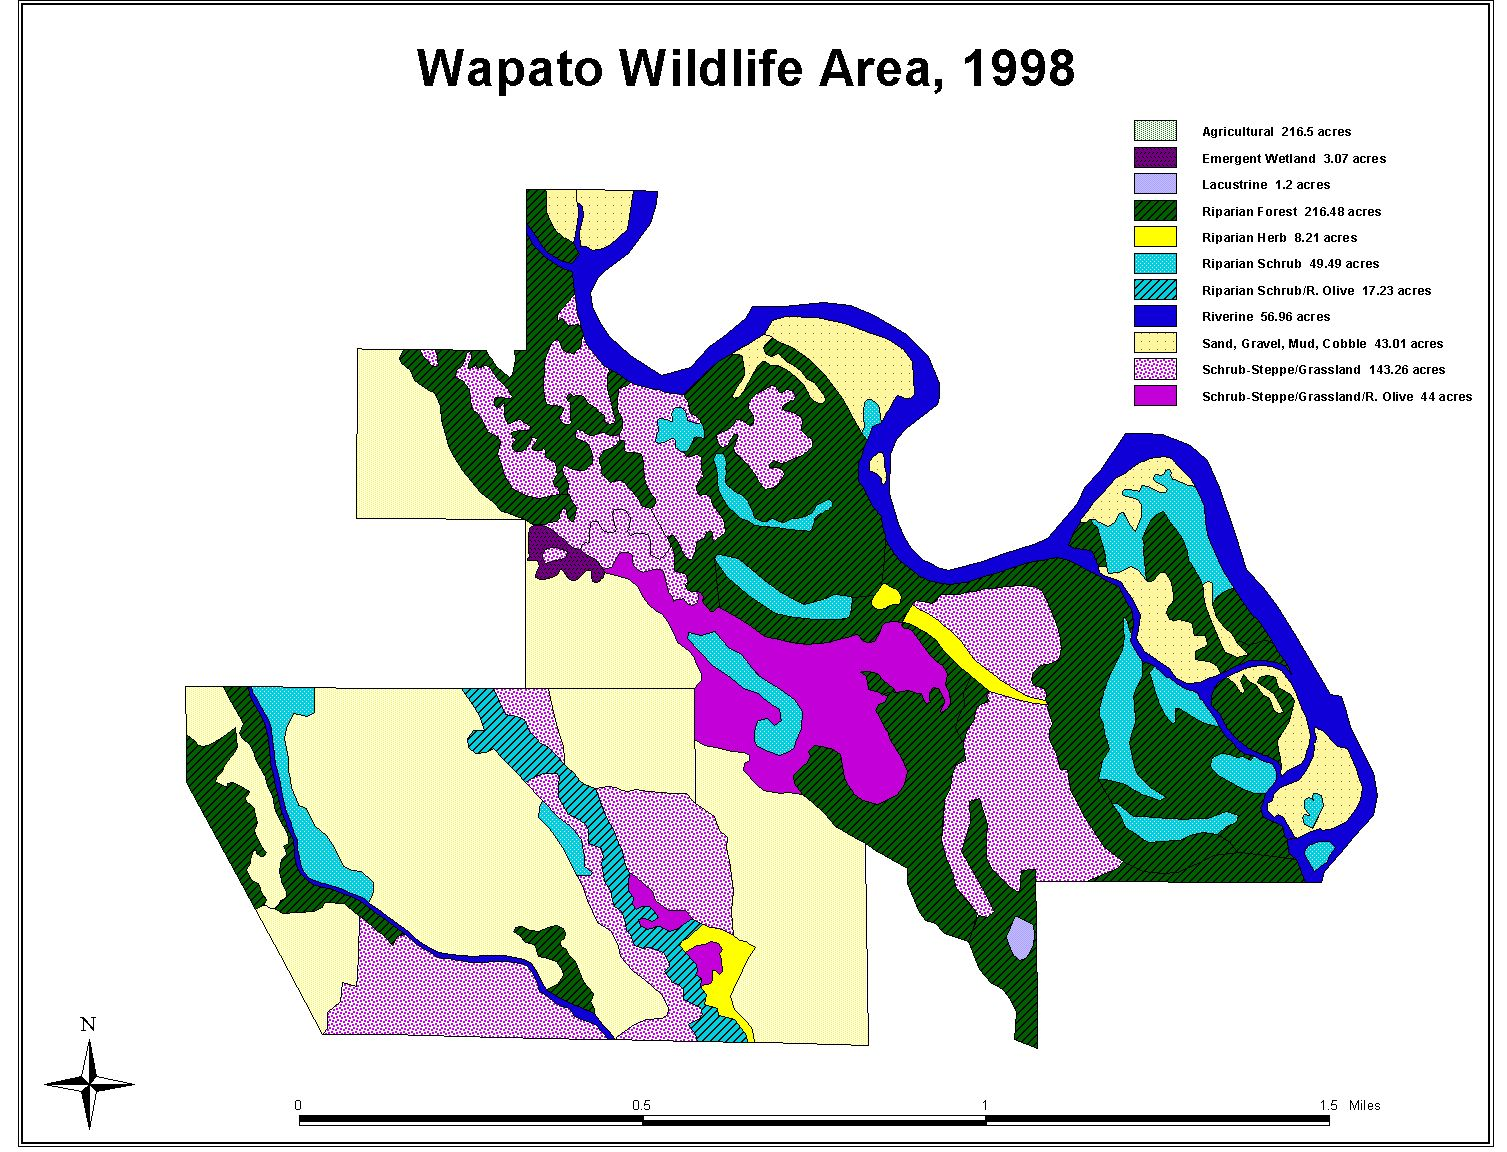 Wapato wildlife area